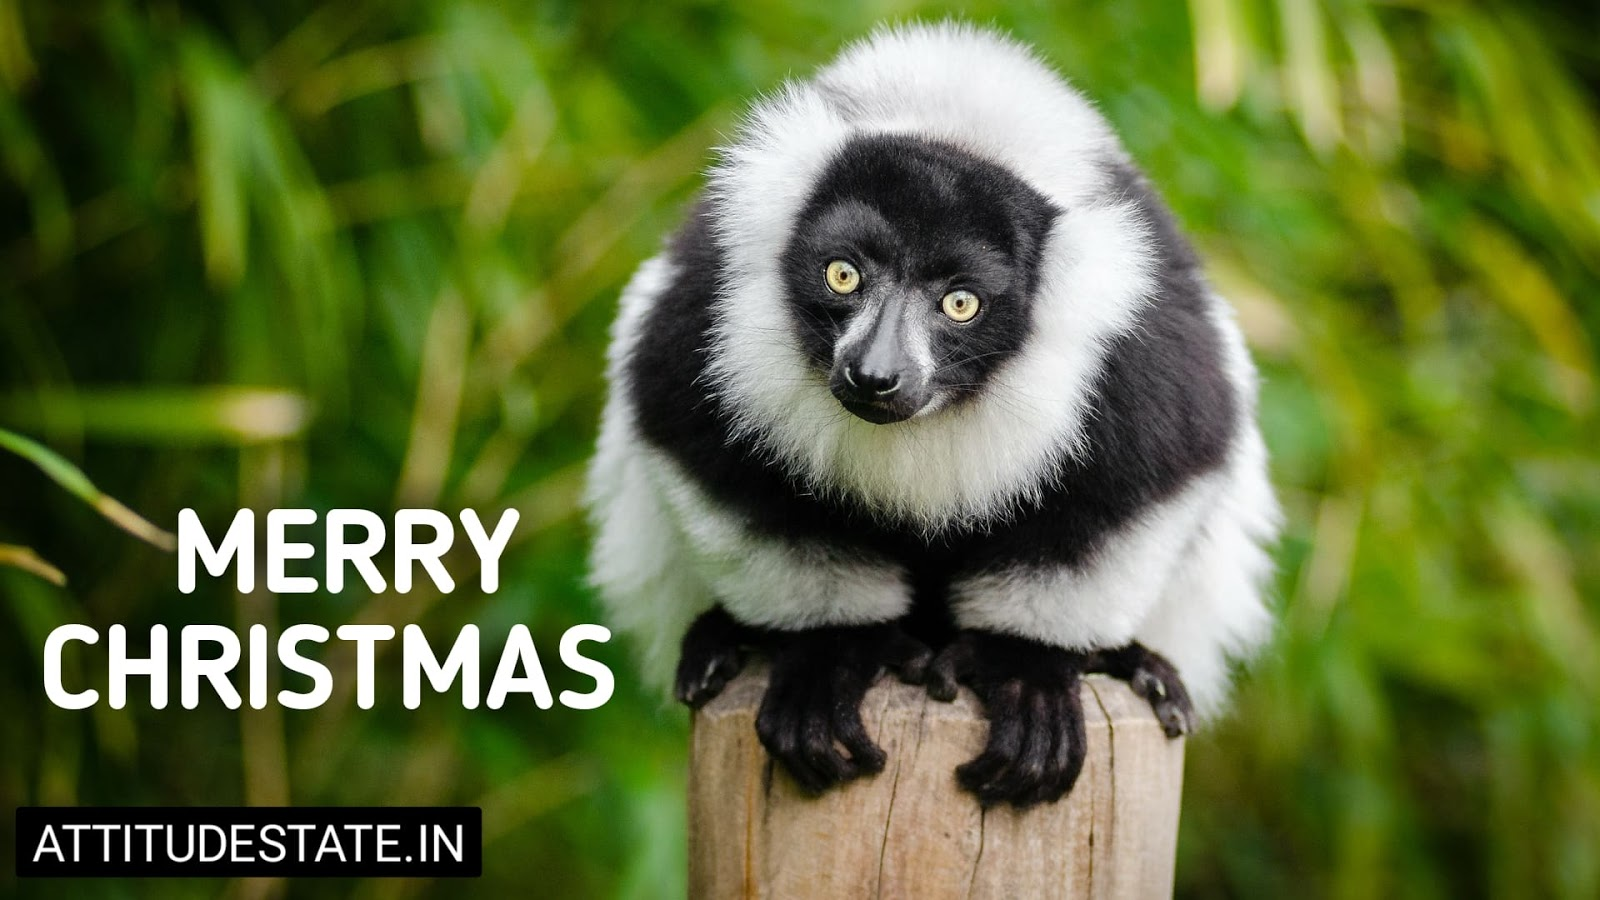 funny merry christmas gif images